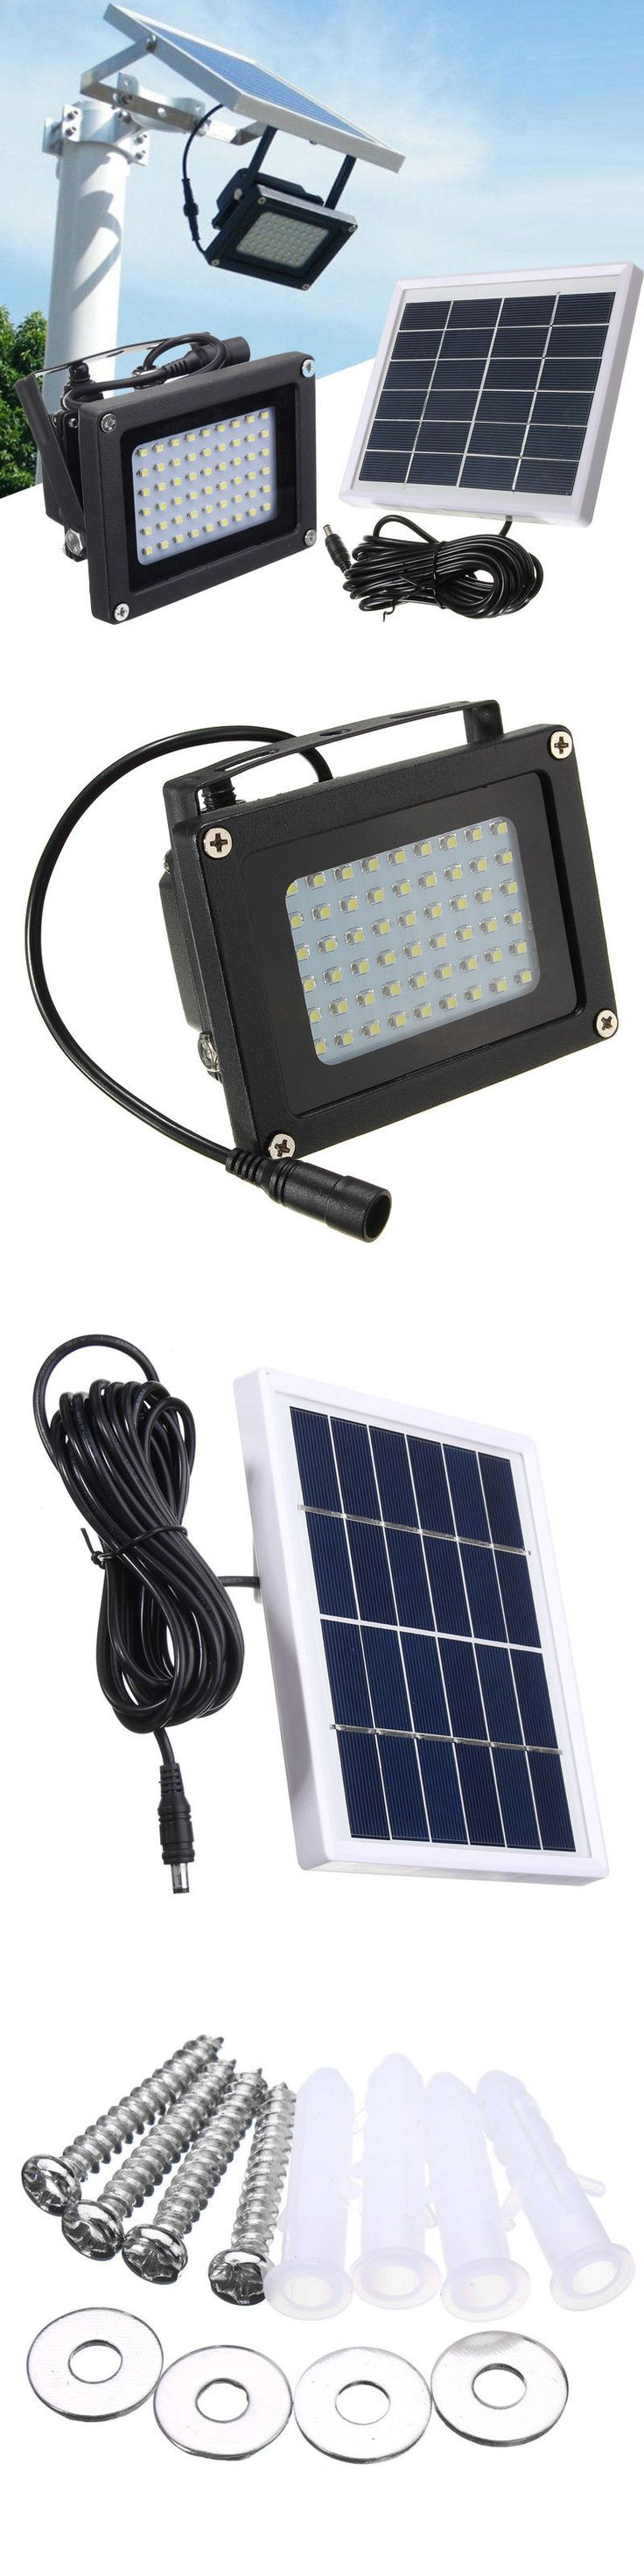 farm and garden: 54 Led Floodlight Solar Powered Sensor Waterproof Outdoor Security Flood Light -> BUY IT NOW ONLY: $32.85 on eBay!